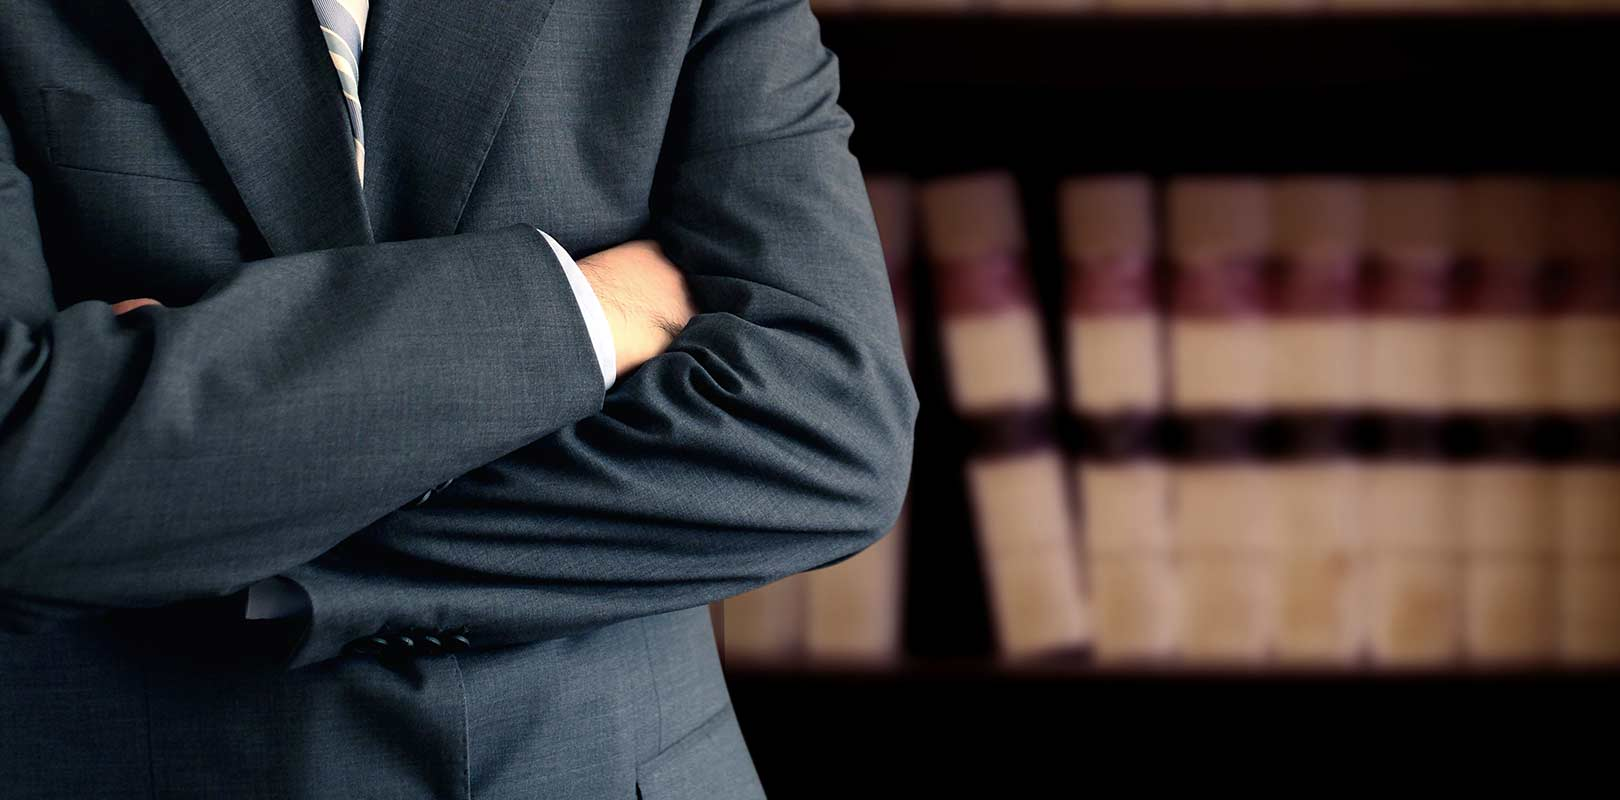 Solicitor with arms folded and law books behind on a shelf